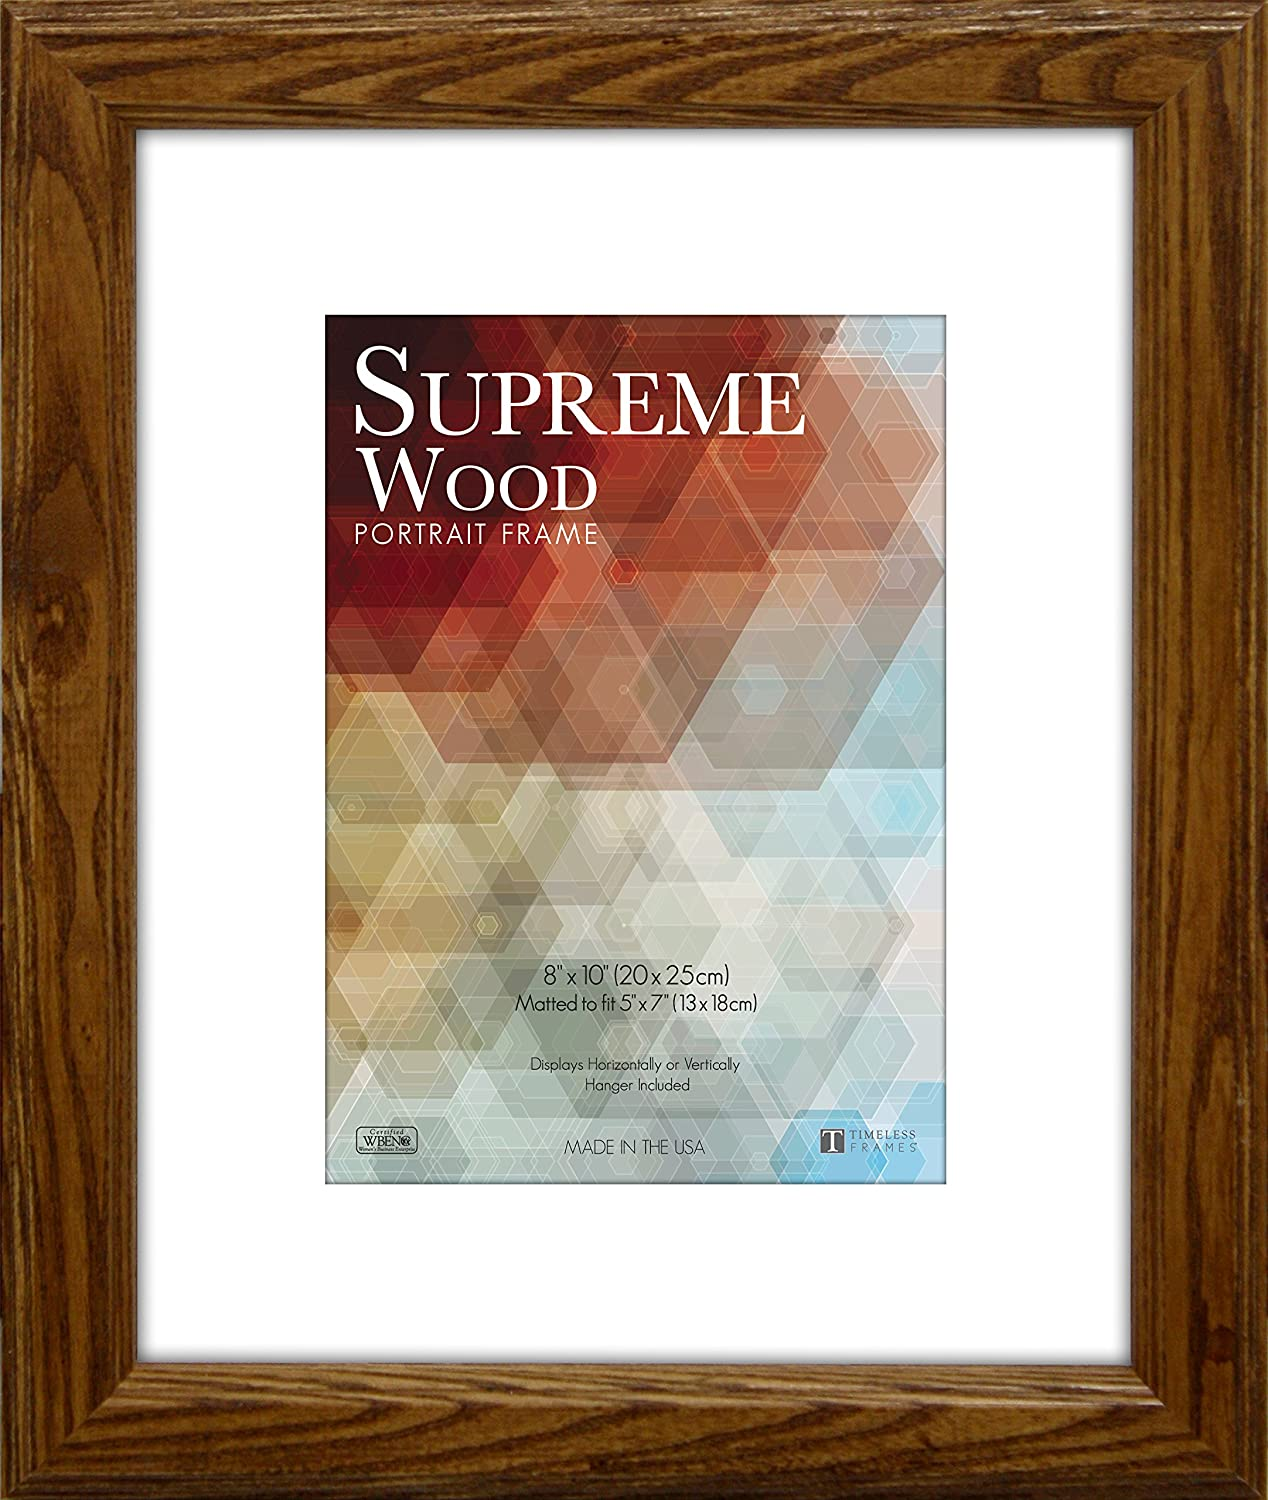 Amazon.com: Timeless Frames 11x14 Inch Fits 8x10 Inch Photo Supreme ...